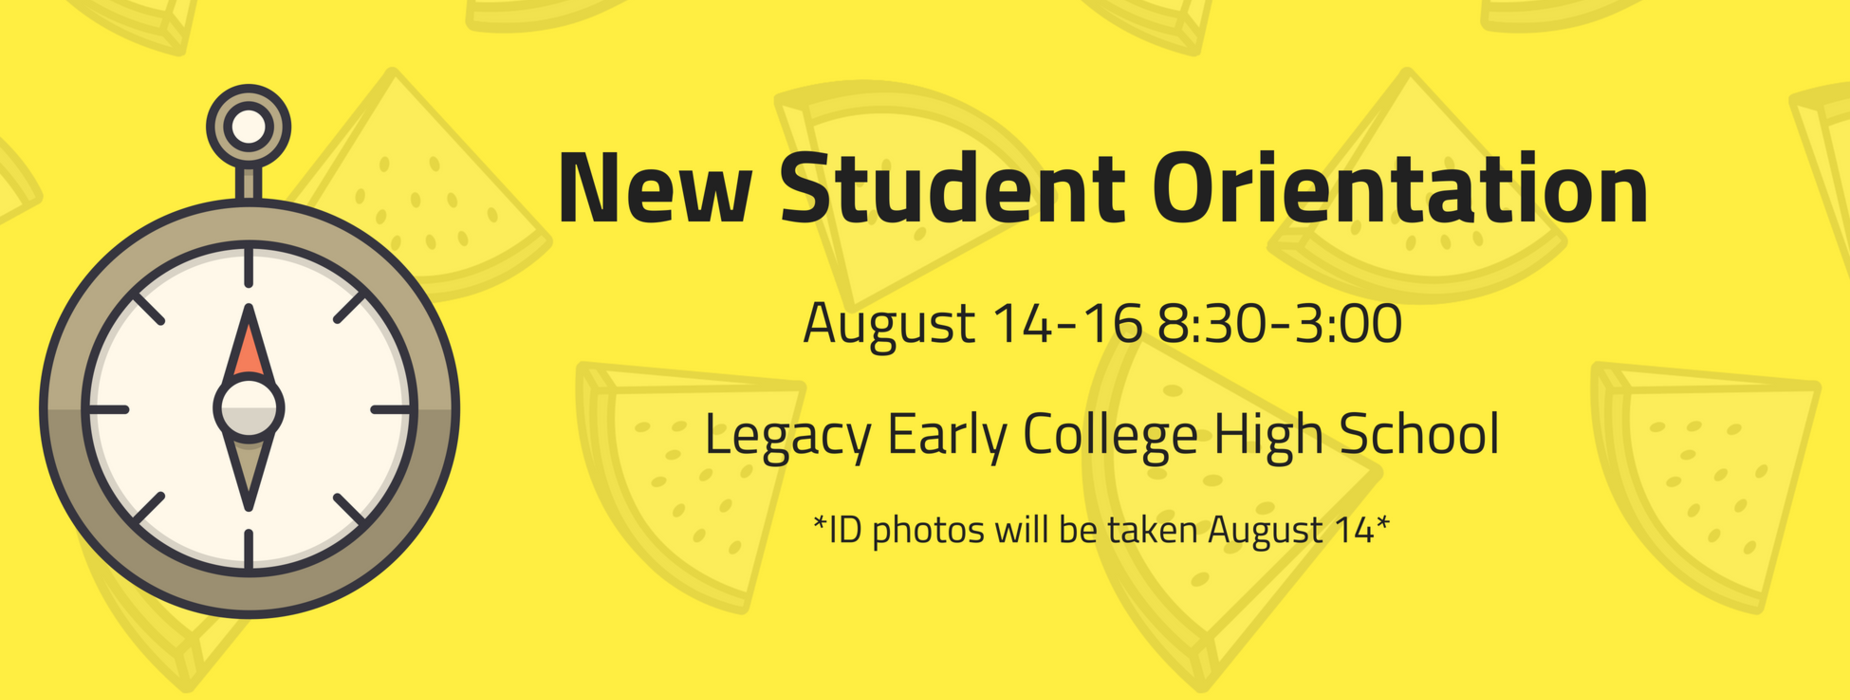 New Student Orientation is 8/14-8/16 from 8:30-3 at Legacy